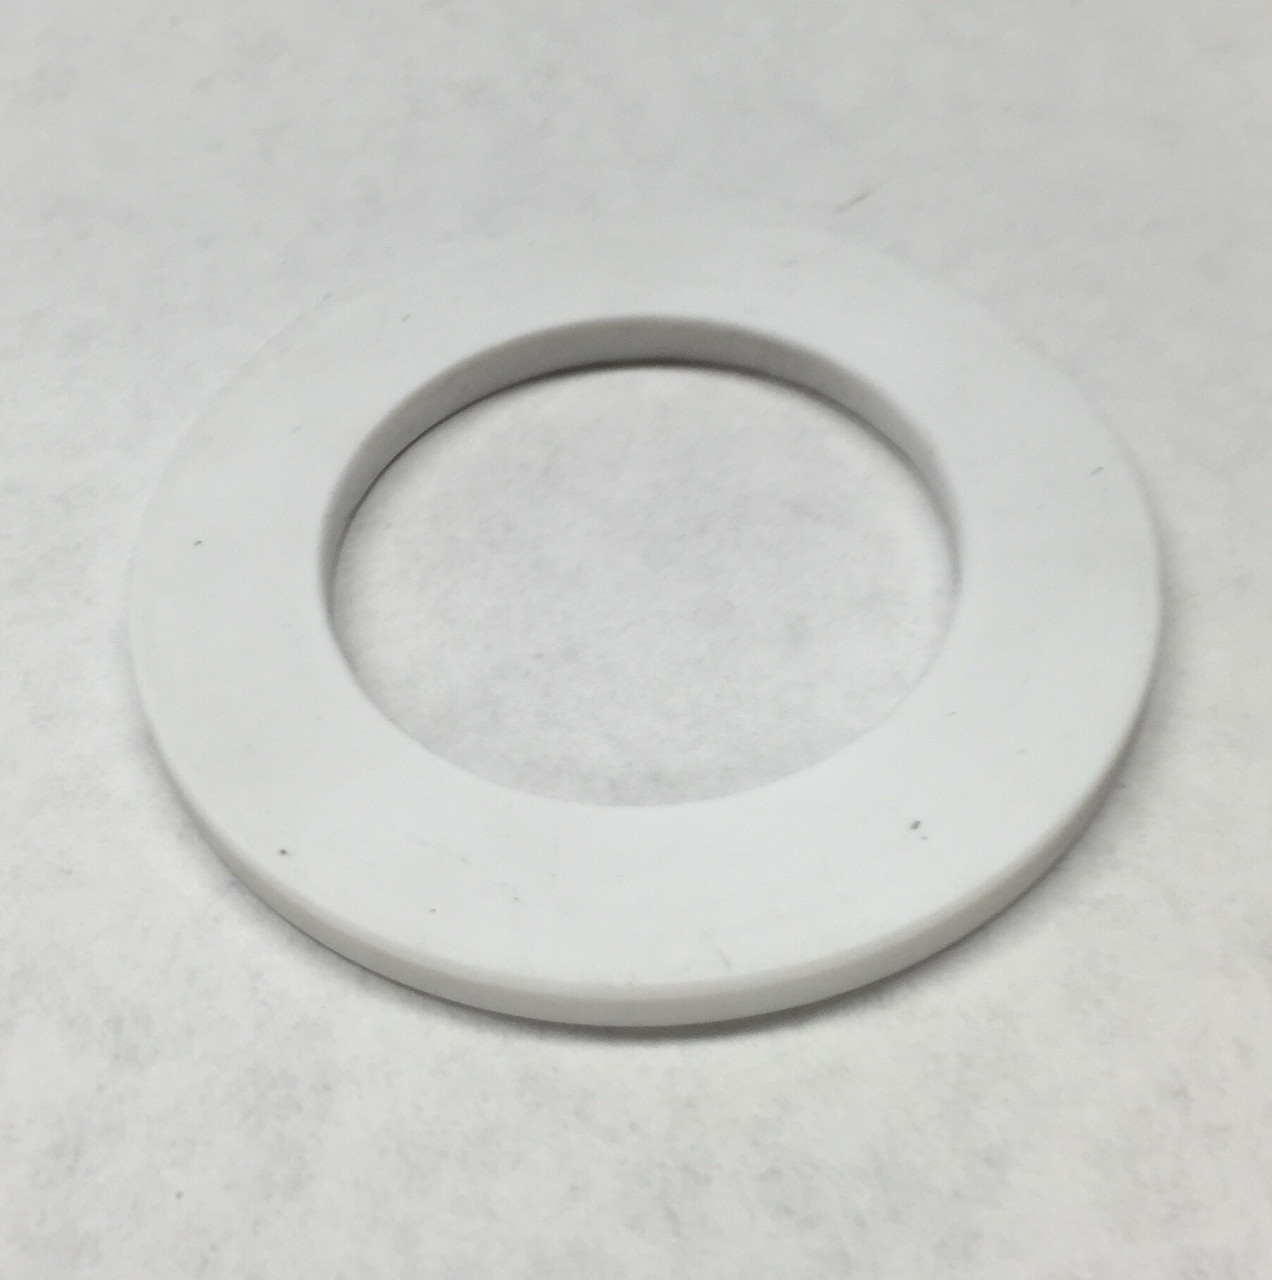 Talsa K-647 - K30e & K30v - Knives Spacer Ring - 5mm - 7246